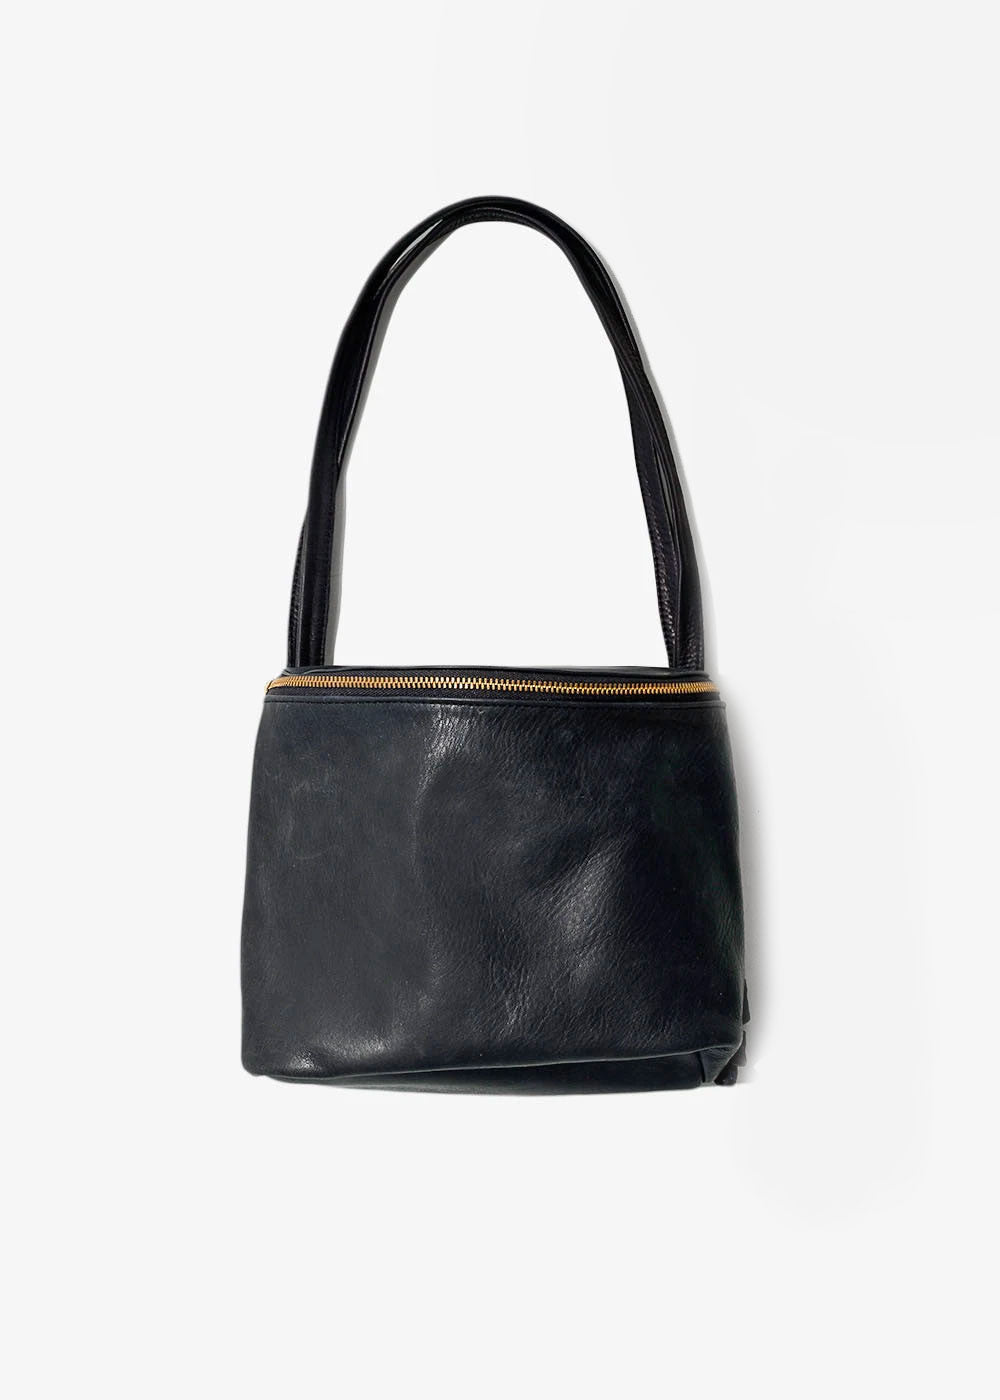 Erin Templeton The Assistant Bag in Black — Shop sustainable fashion and slow fashion at New Classics Studios